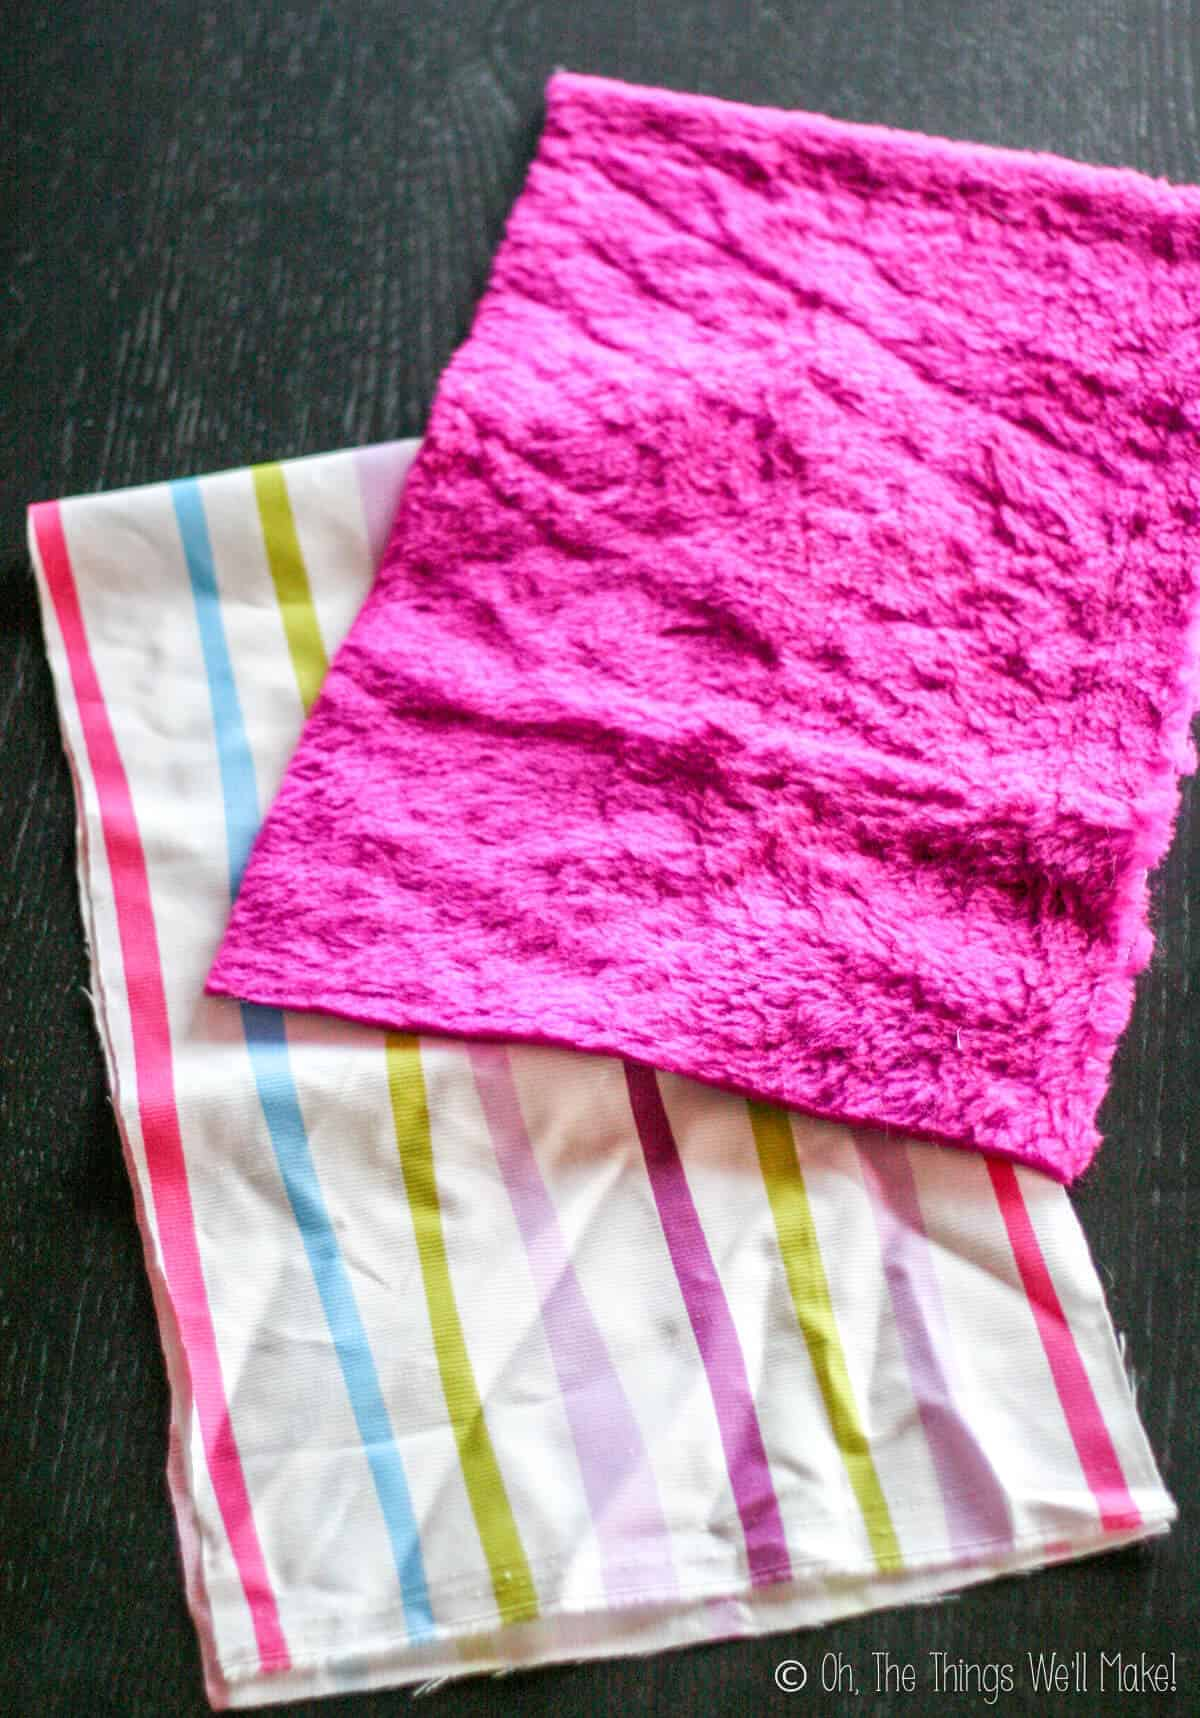 A striped fabric underneath a piece of a fuzzy pink cloth.